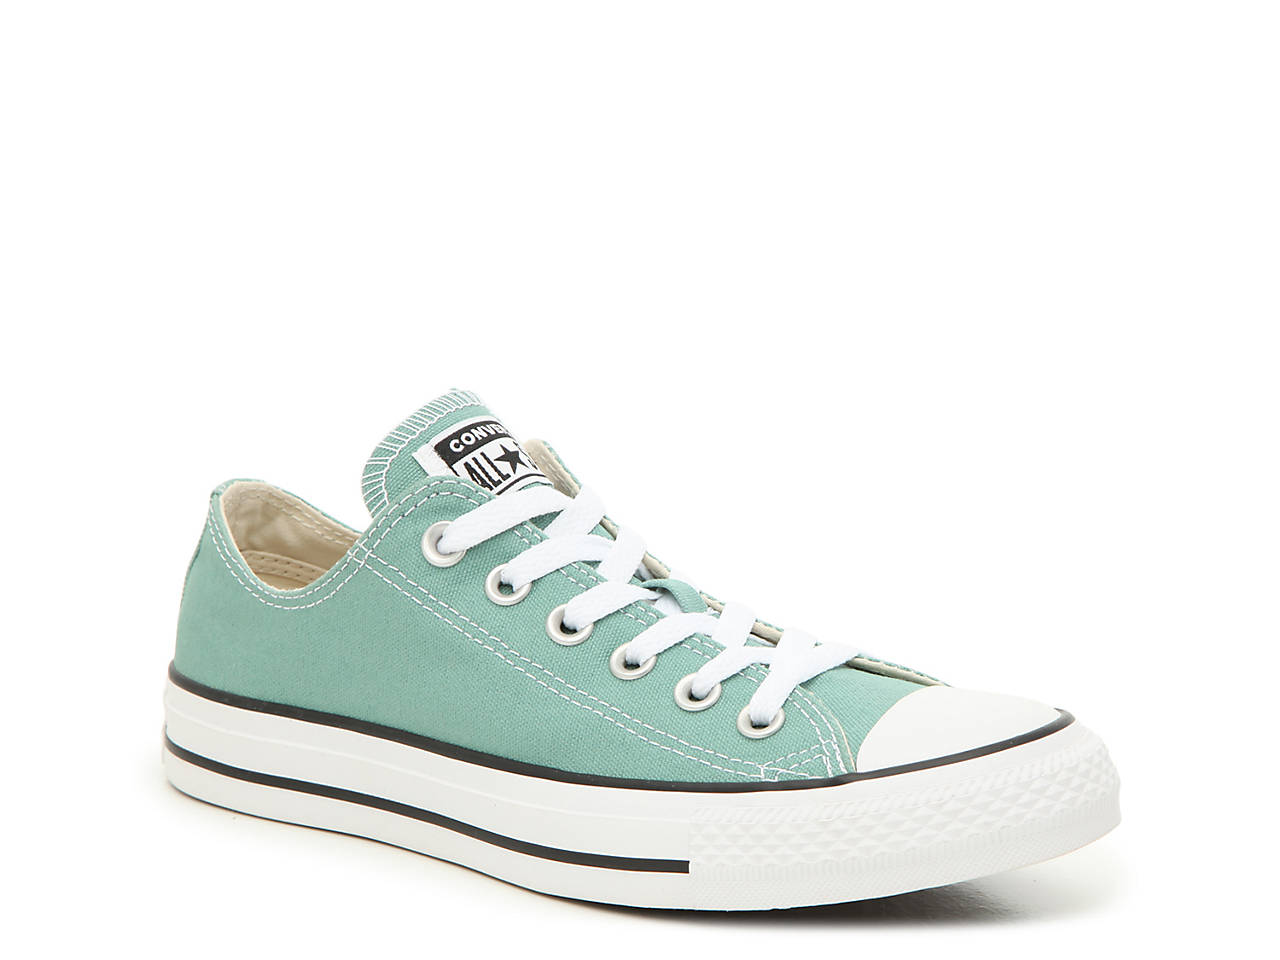 a0c60316cc7e Converse Chuck Taylor All Star Sneaker - Women s Women s Shoes